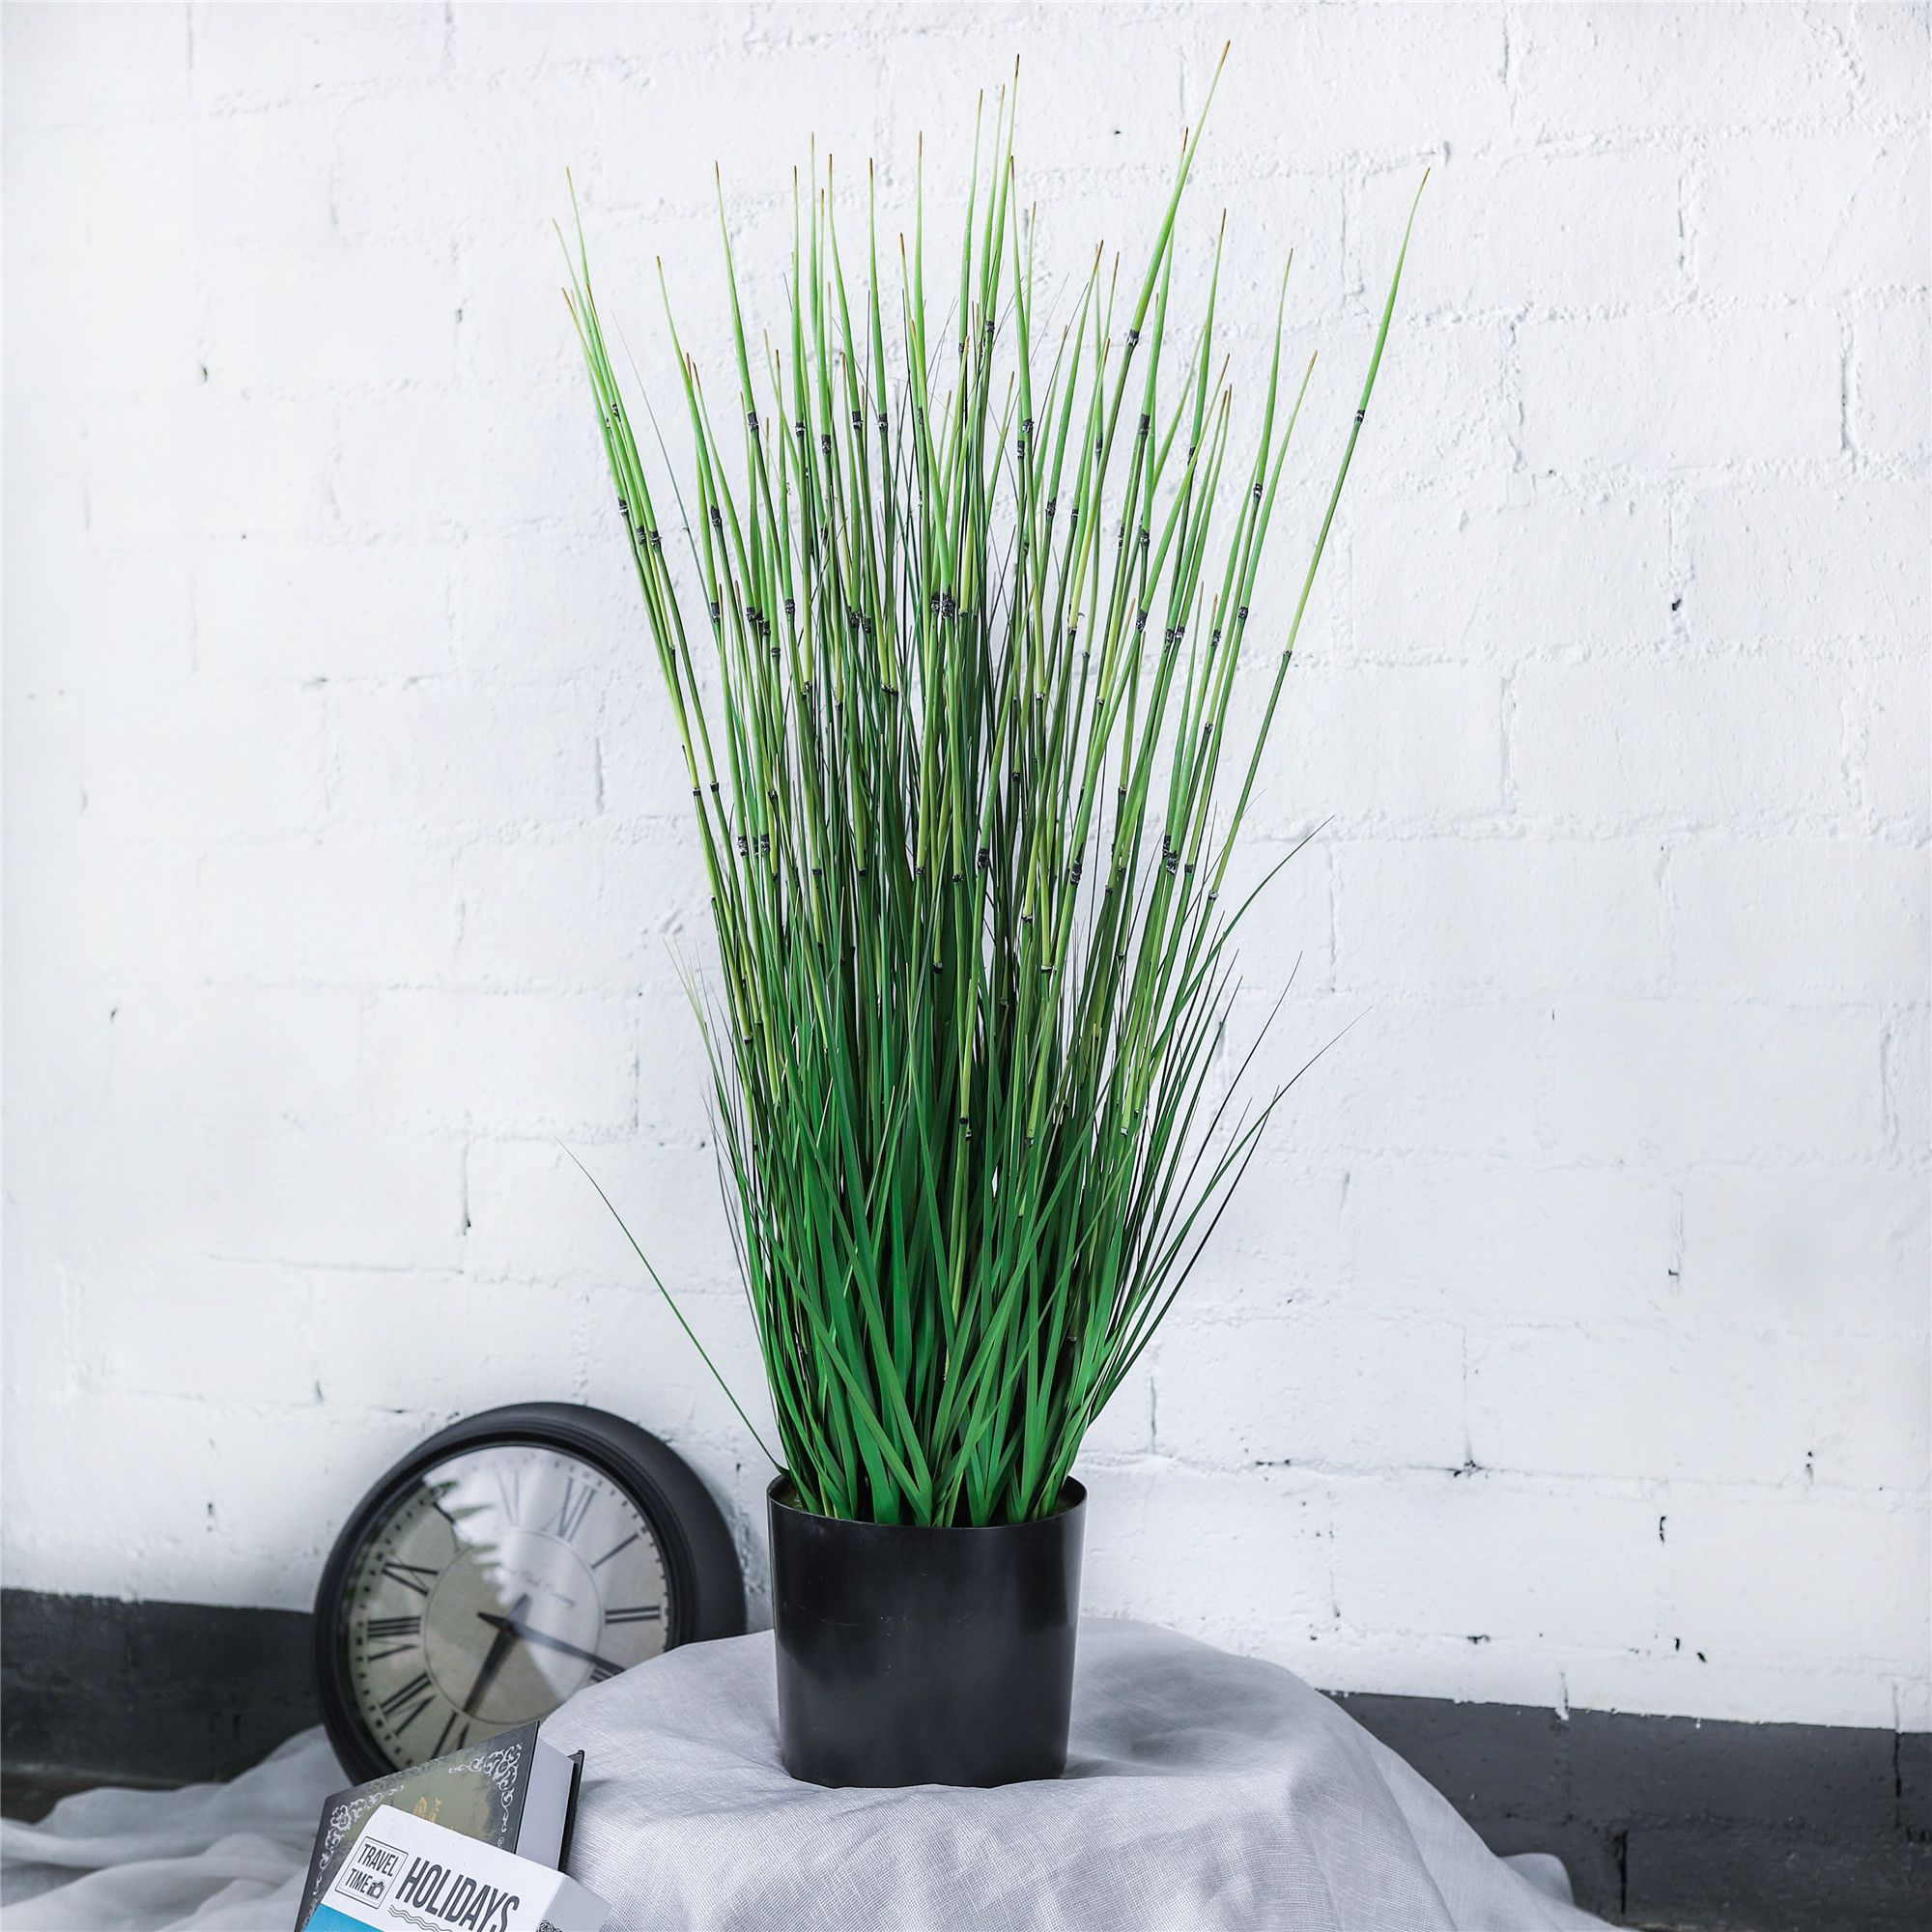 Artificial Plants For Home Decor Indoor Large Natural Looking Faux Fake Tall Rushes Gr Herb Horsetail Reed Marsh Bamboo Plant Homedecor